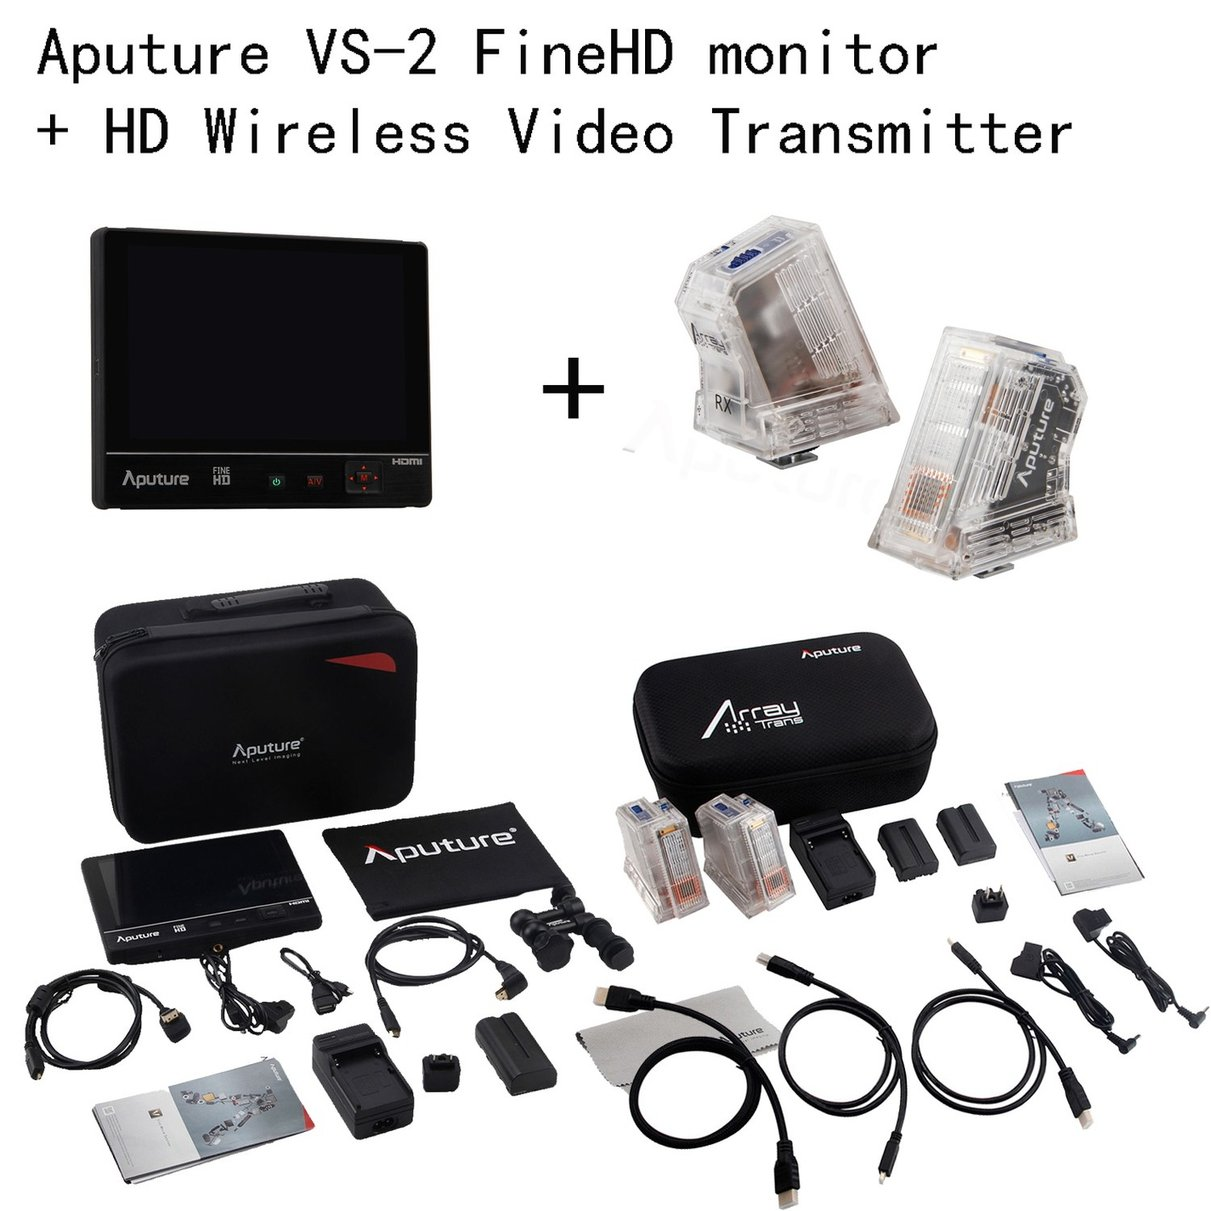 Aputure VS-2 FineHD 7 LCD Field Monitor kit + Array Trans Wireless Video Transmitter kit aputure vs 1 v screen digital video monitor